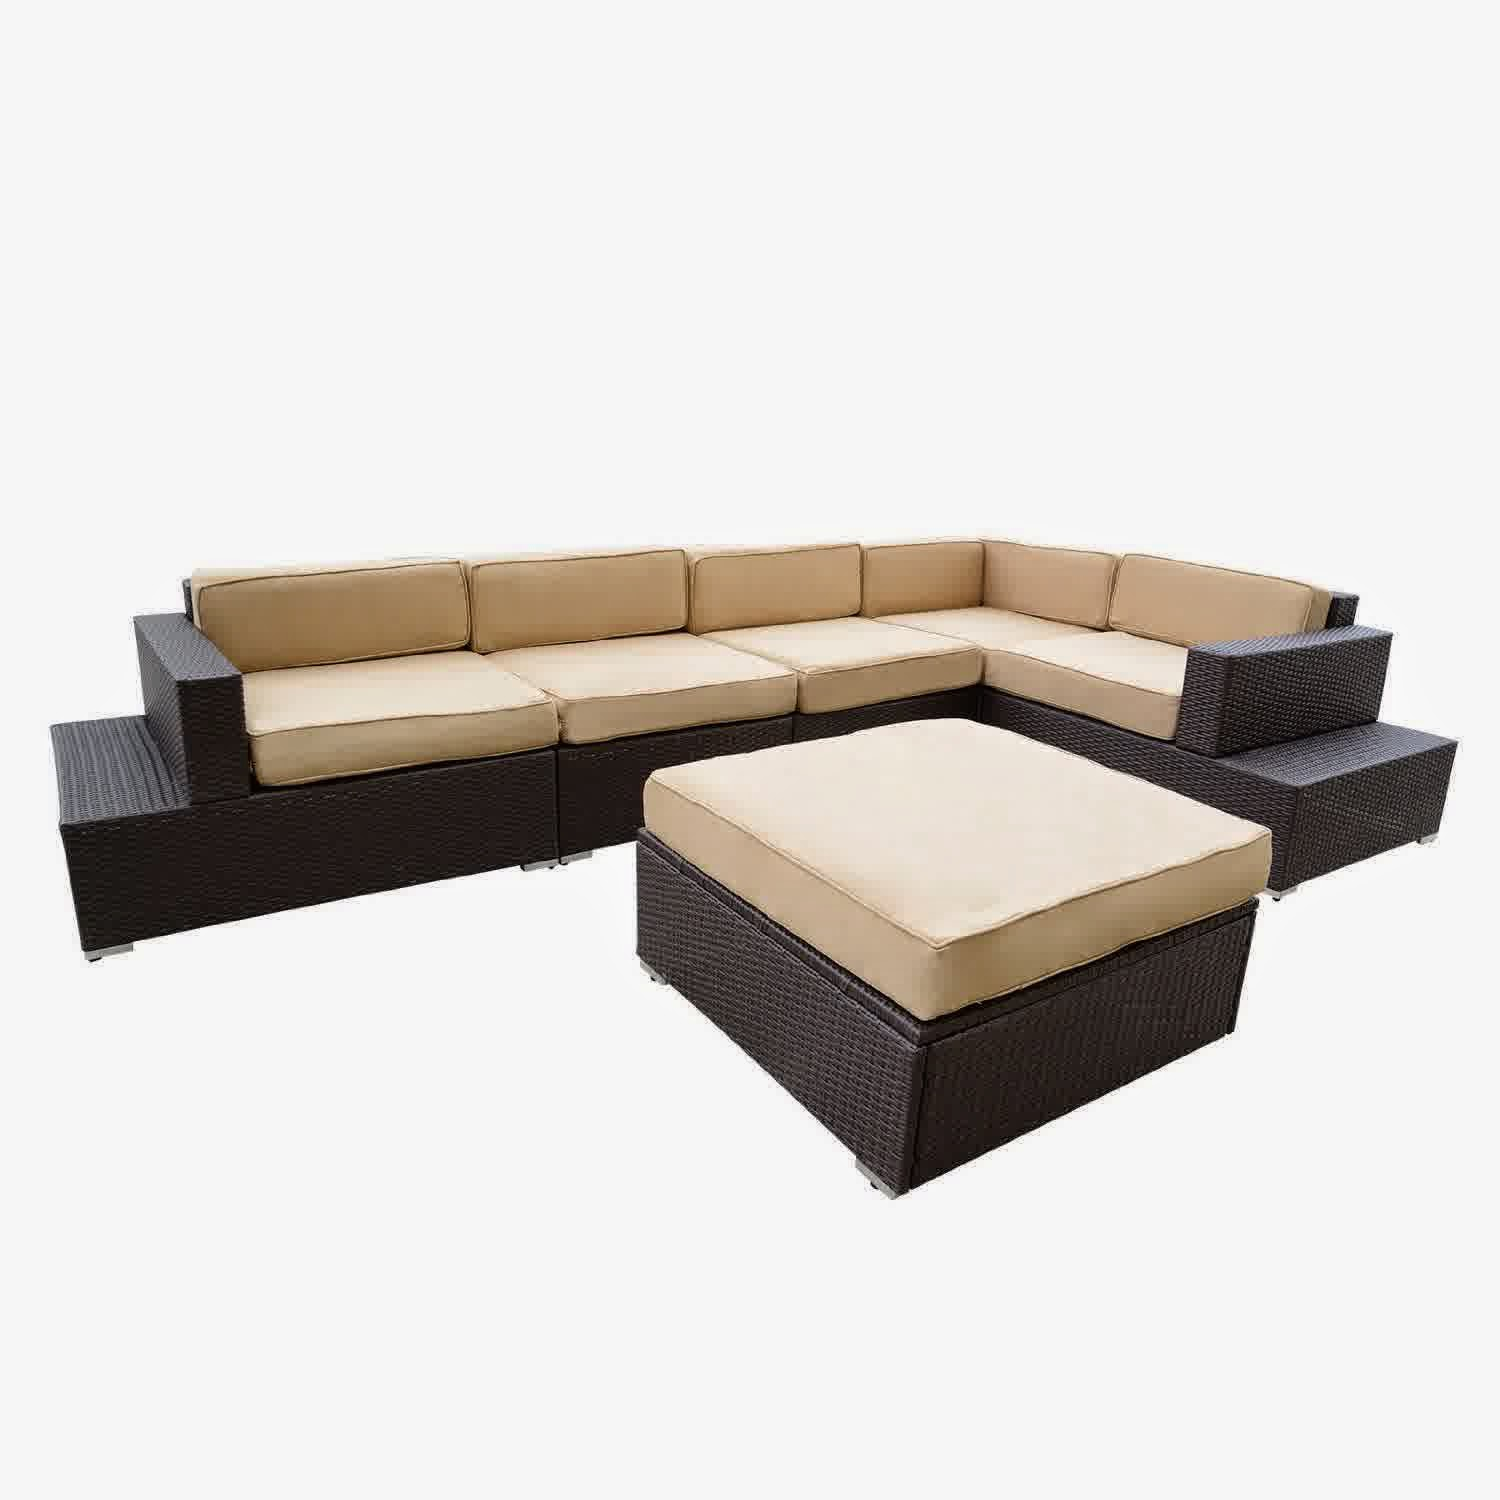 Big Sale Discount 50 Outdoor Patio Rattan Sofa Wicker Sectional Furniture Sofa Set Outdoor